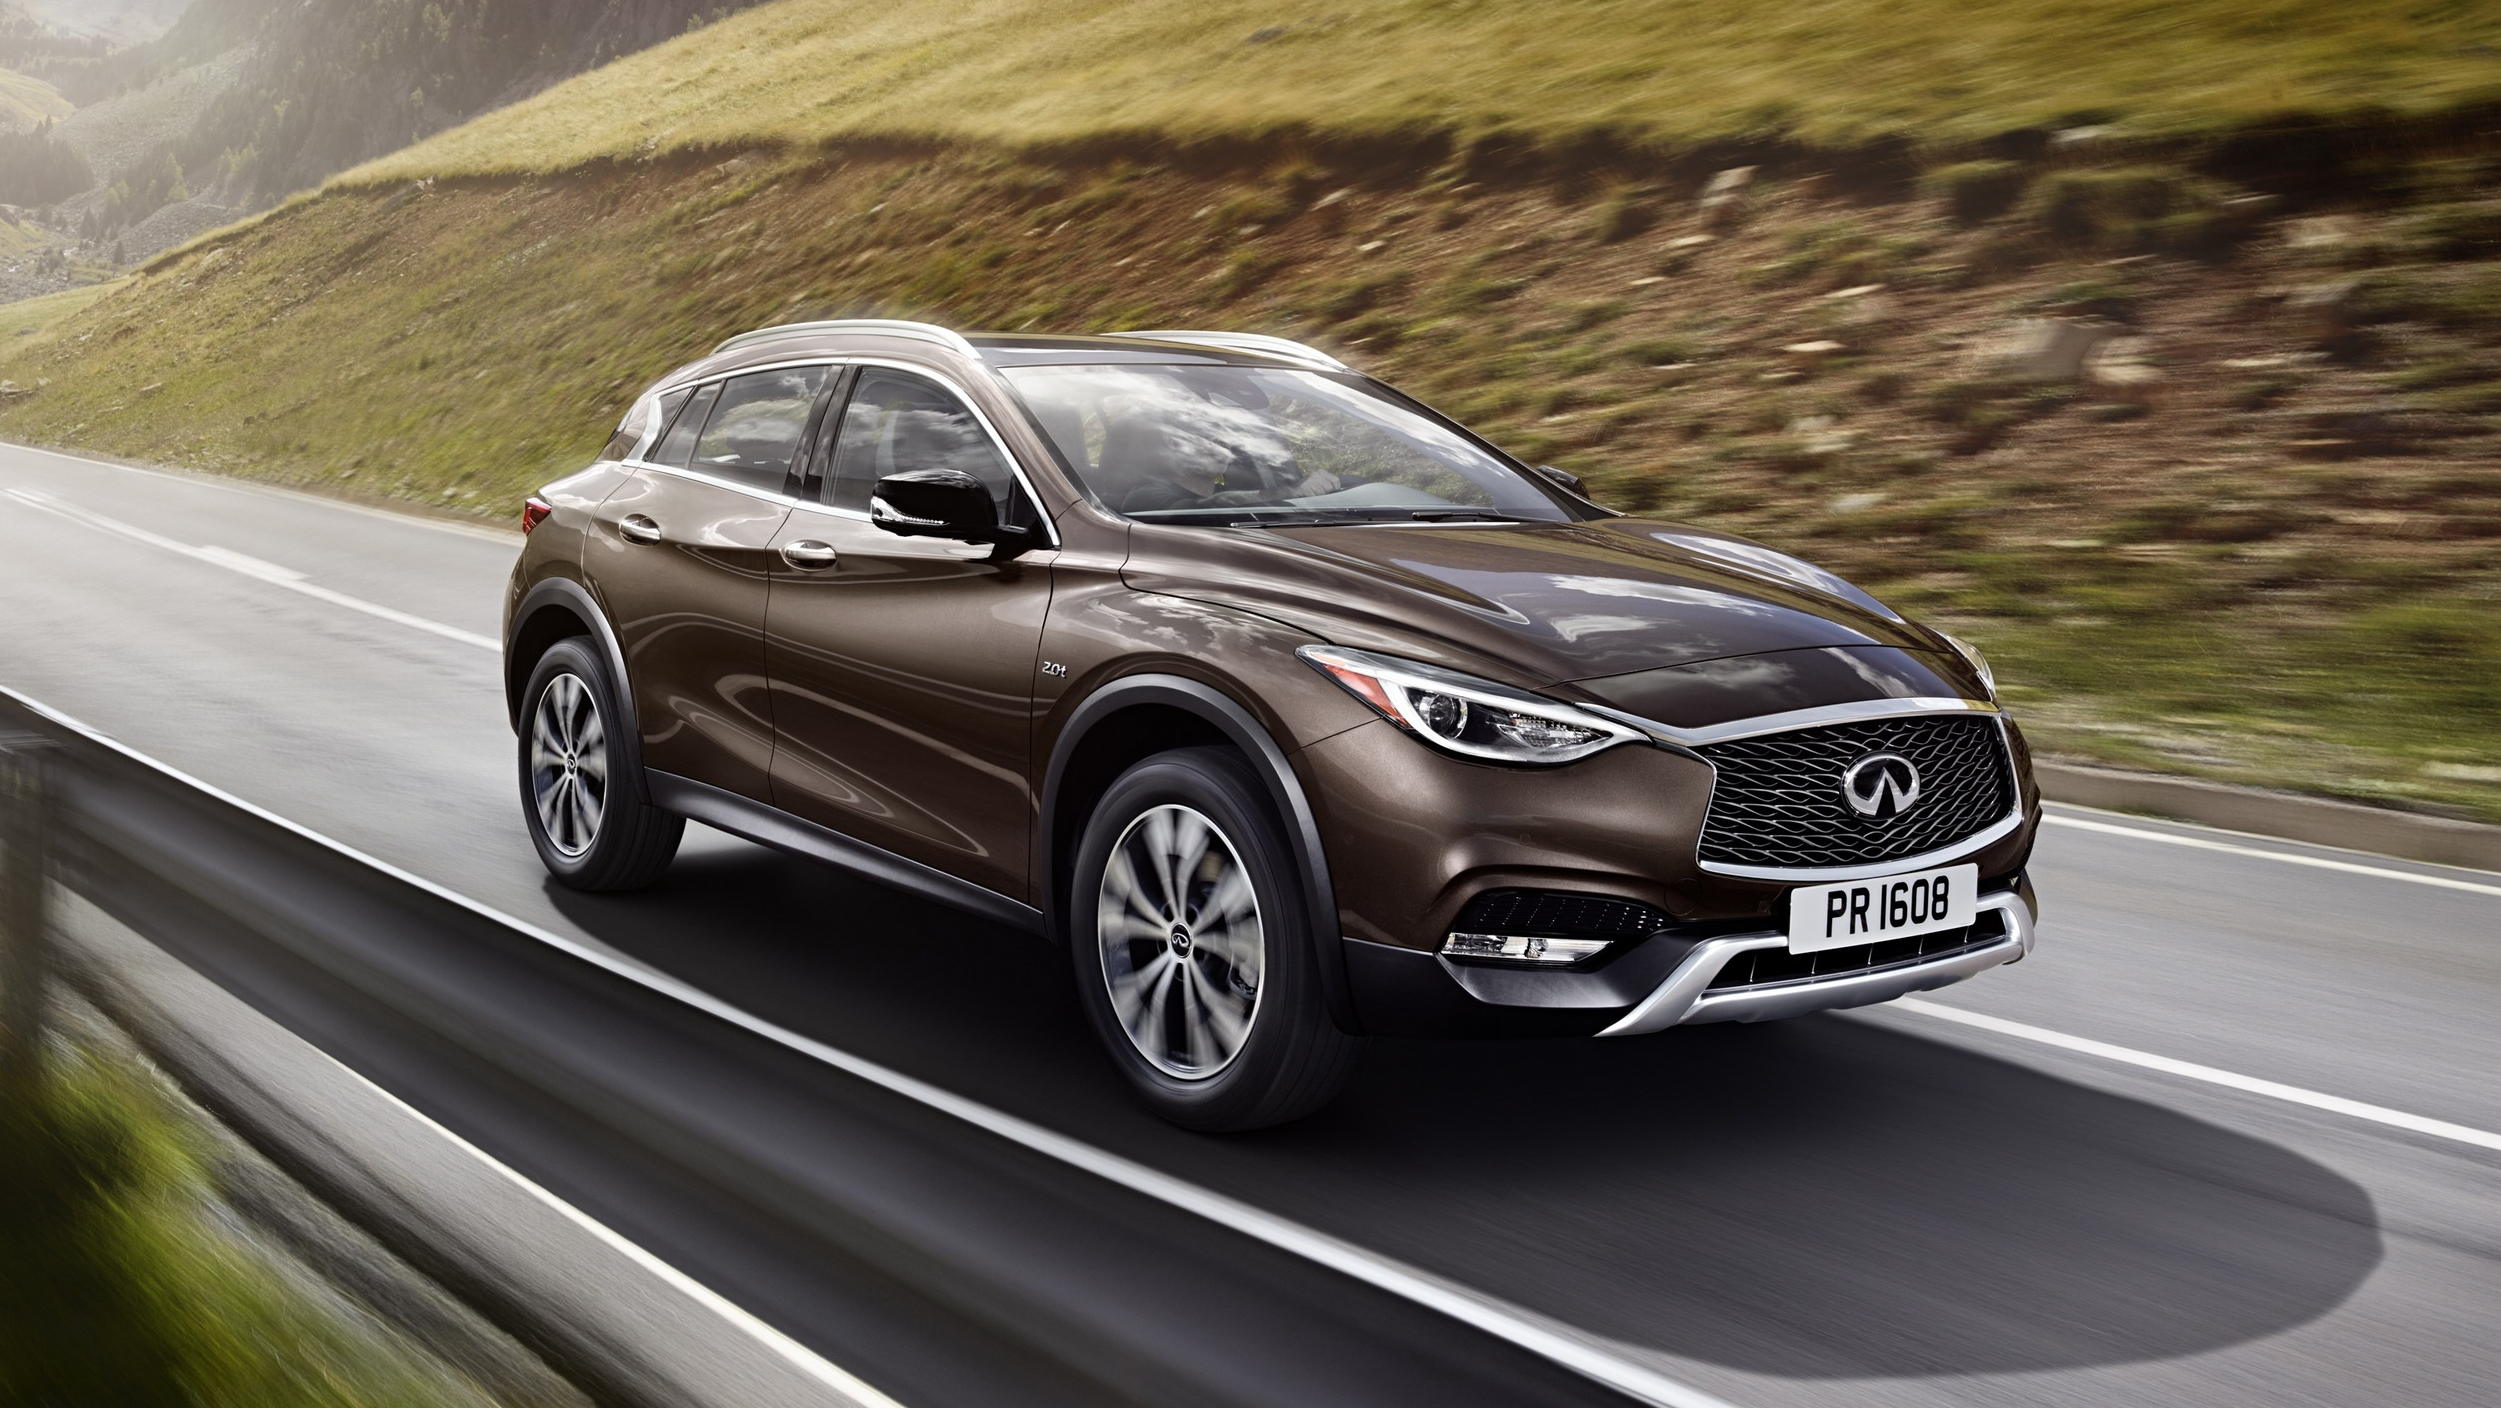 2017 infiniti qx30 pictures photos wallpapers top speed. Black Bedroom Furniture Sets. Home Design Ideas